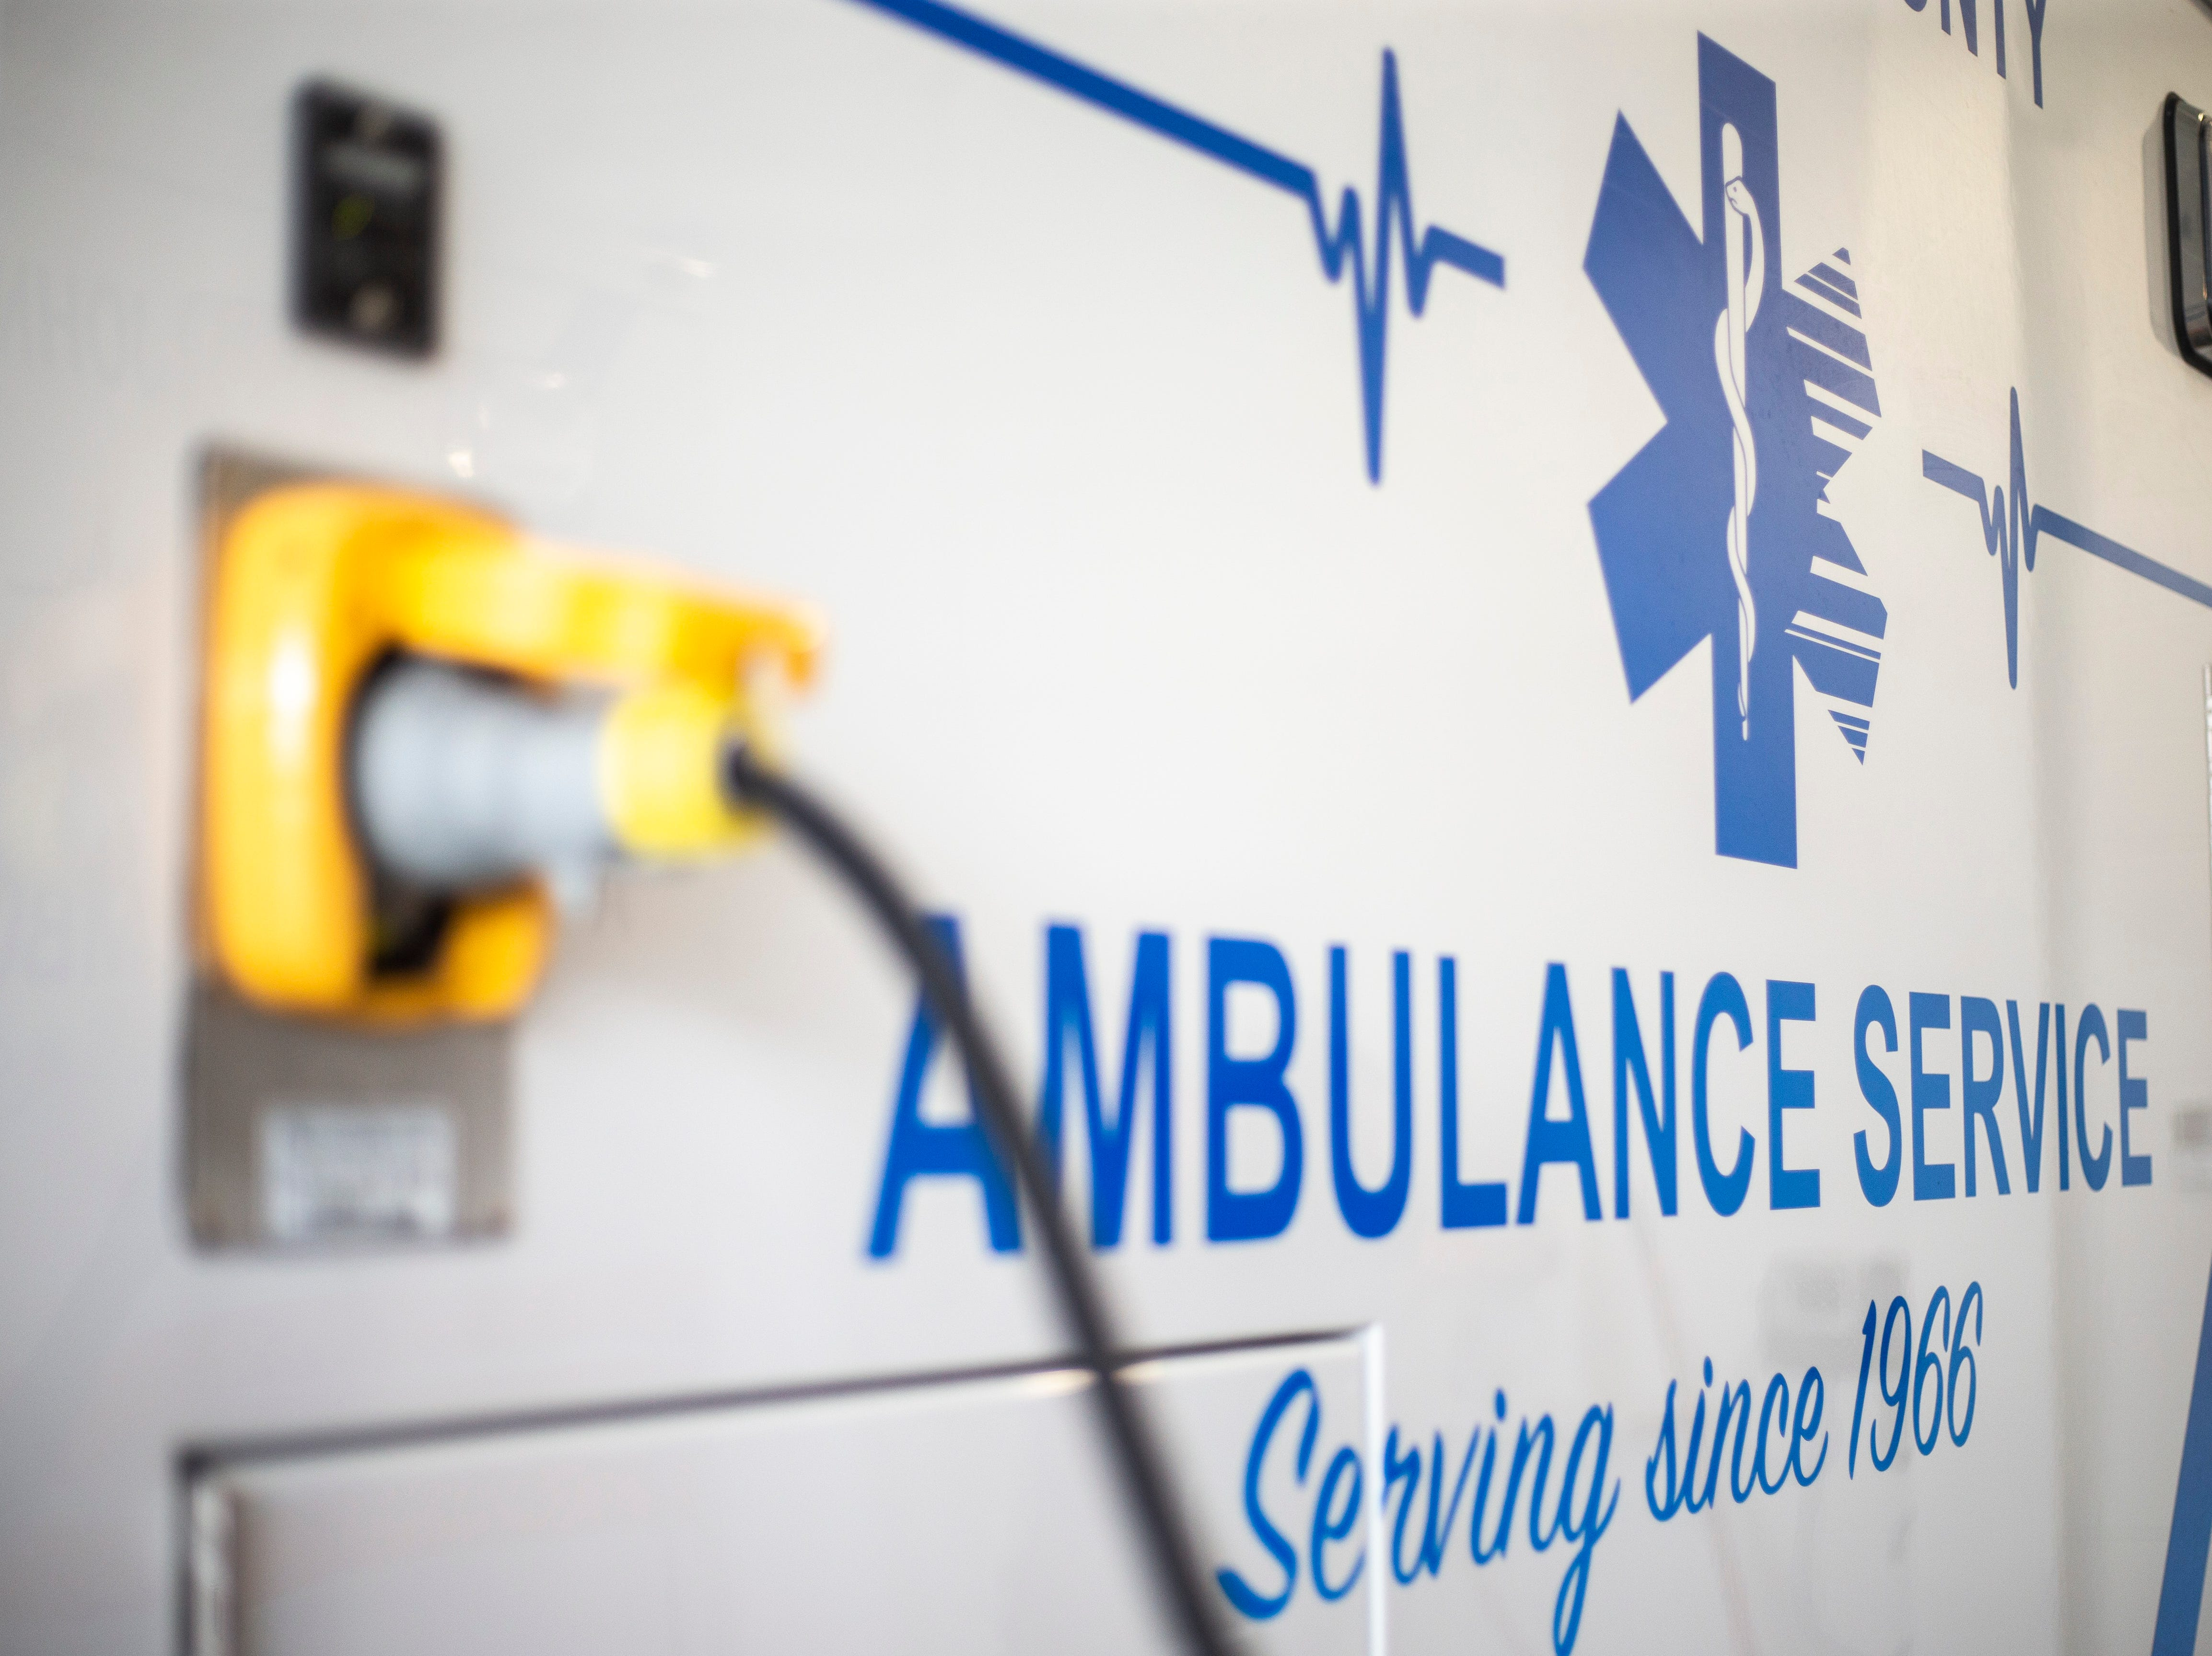 A plug charges up an ambulance on Wednesday, April 17, 2019, at the Johnson County Ambulance Services building at 808 S. Dubuque Street in Iowa City, Iowa.